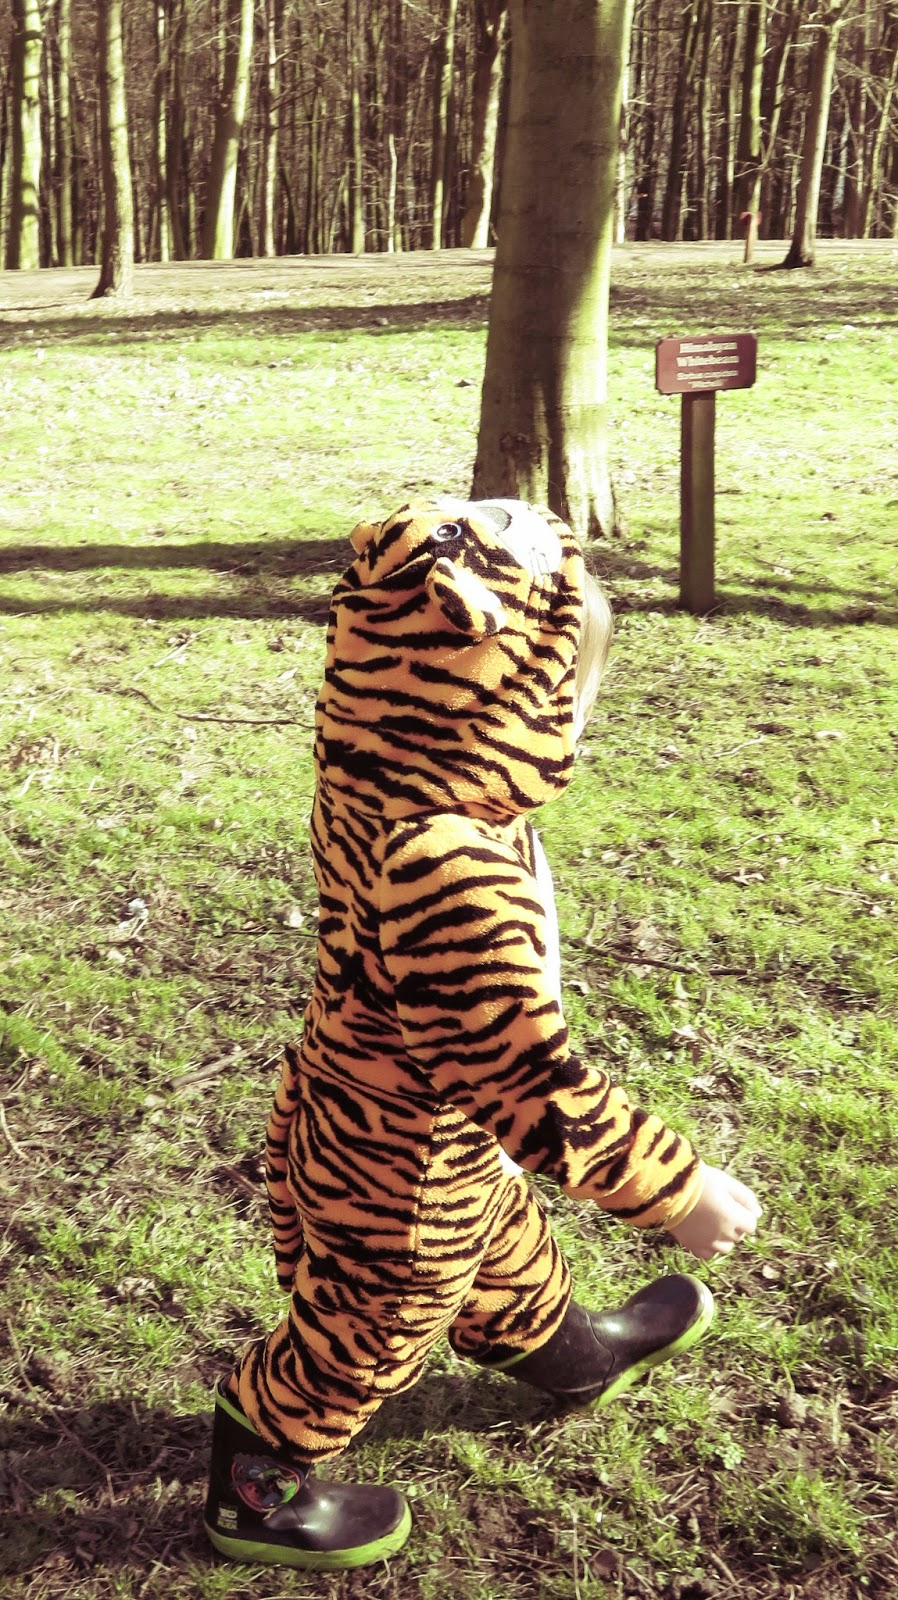 Tiger goes for a walk